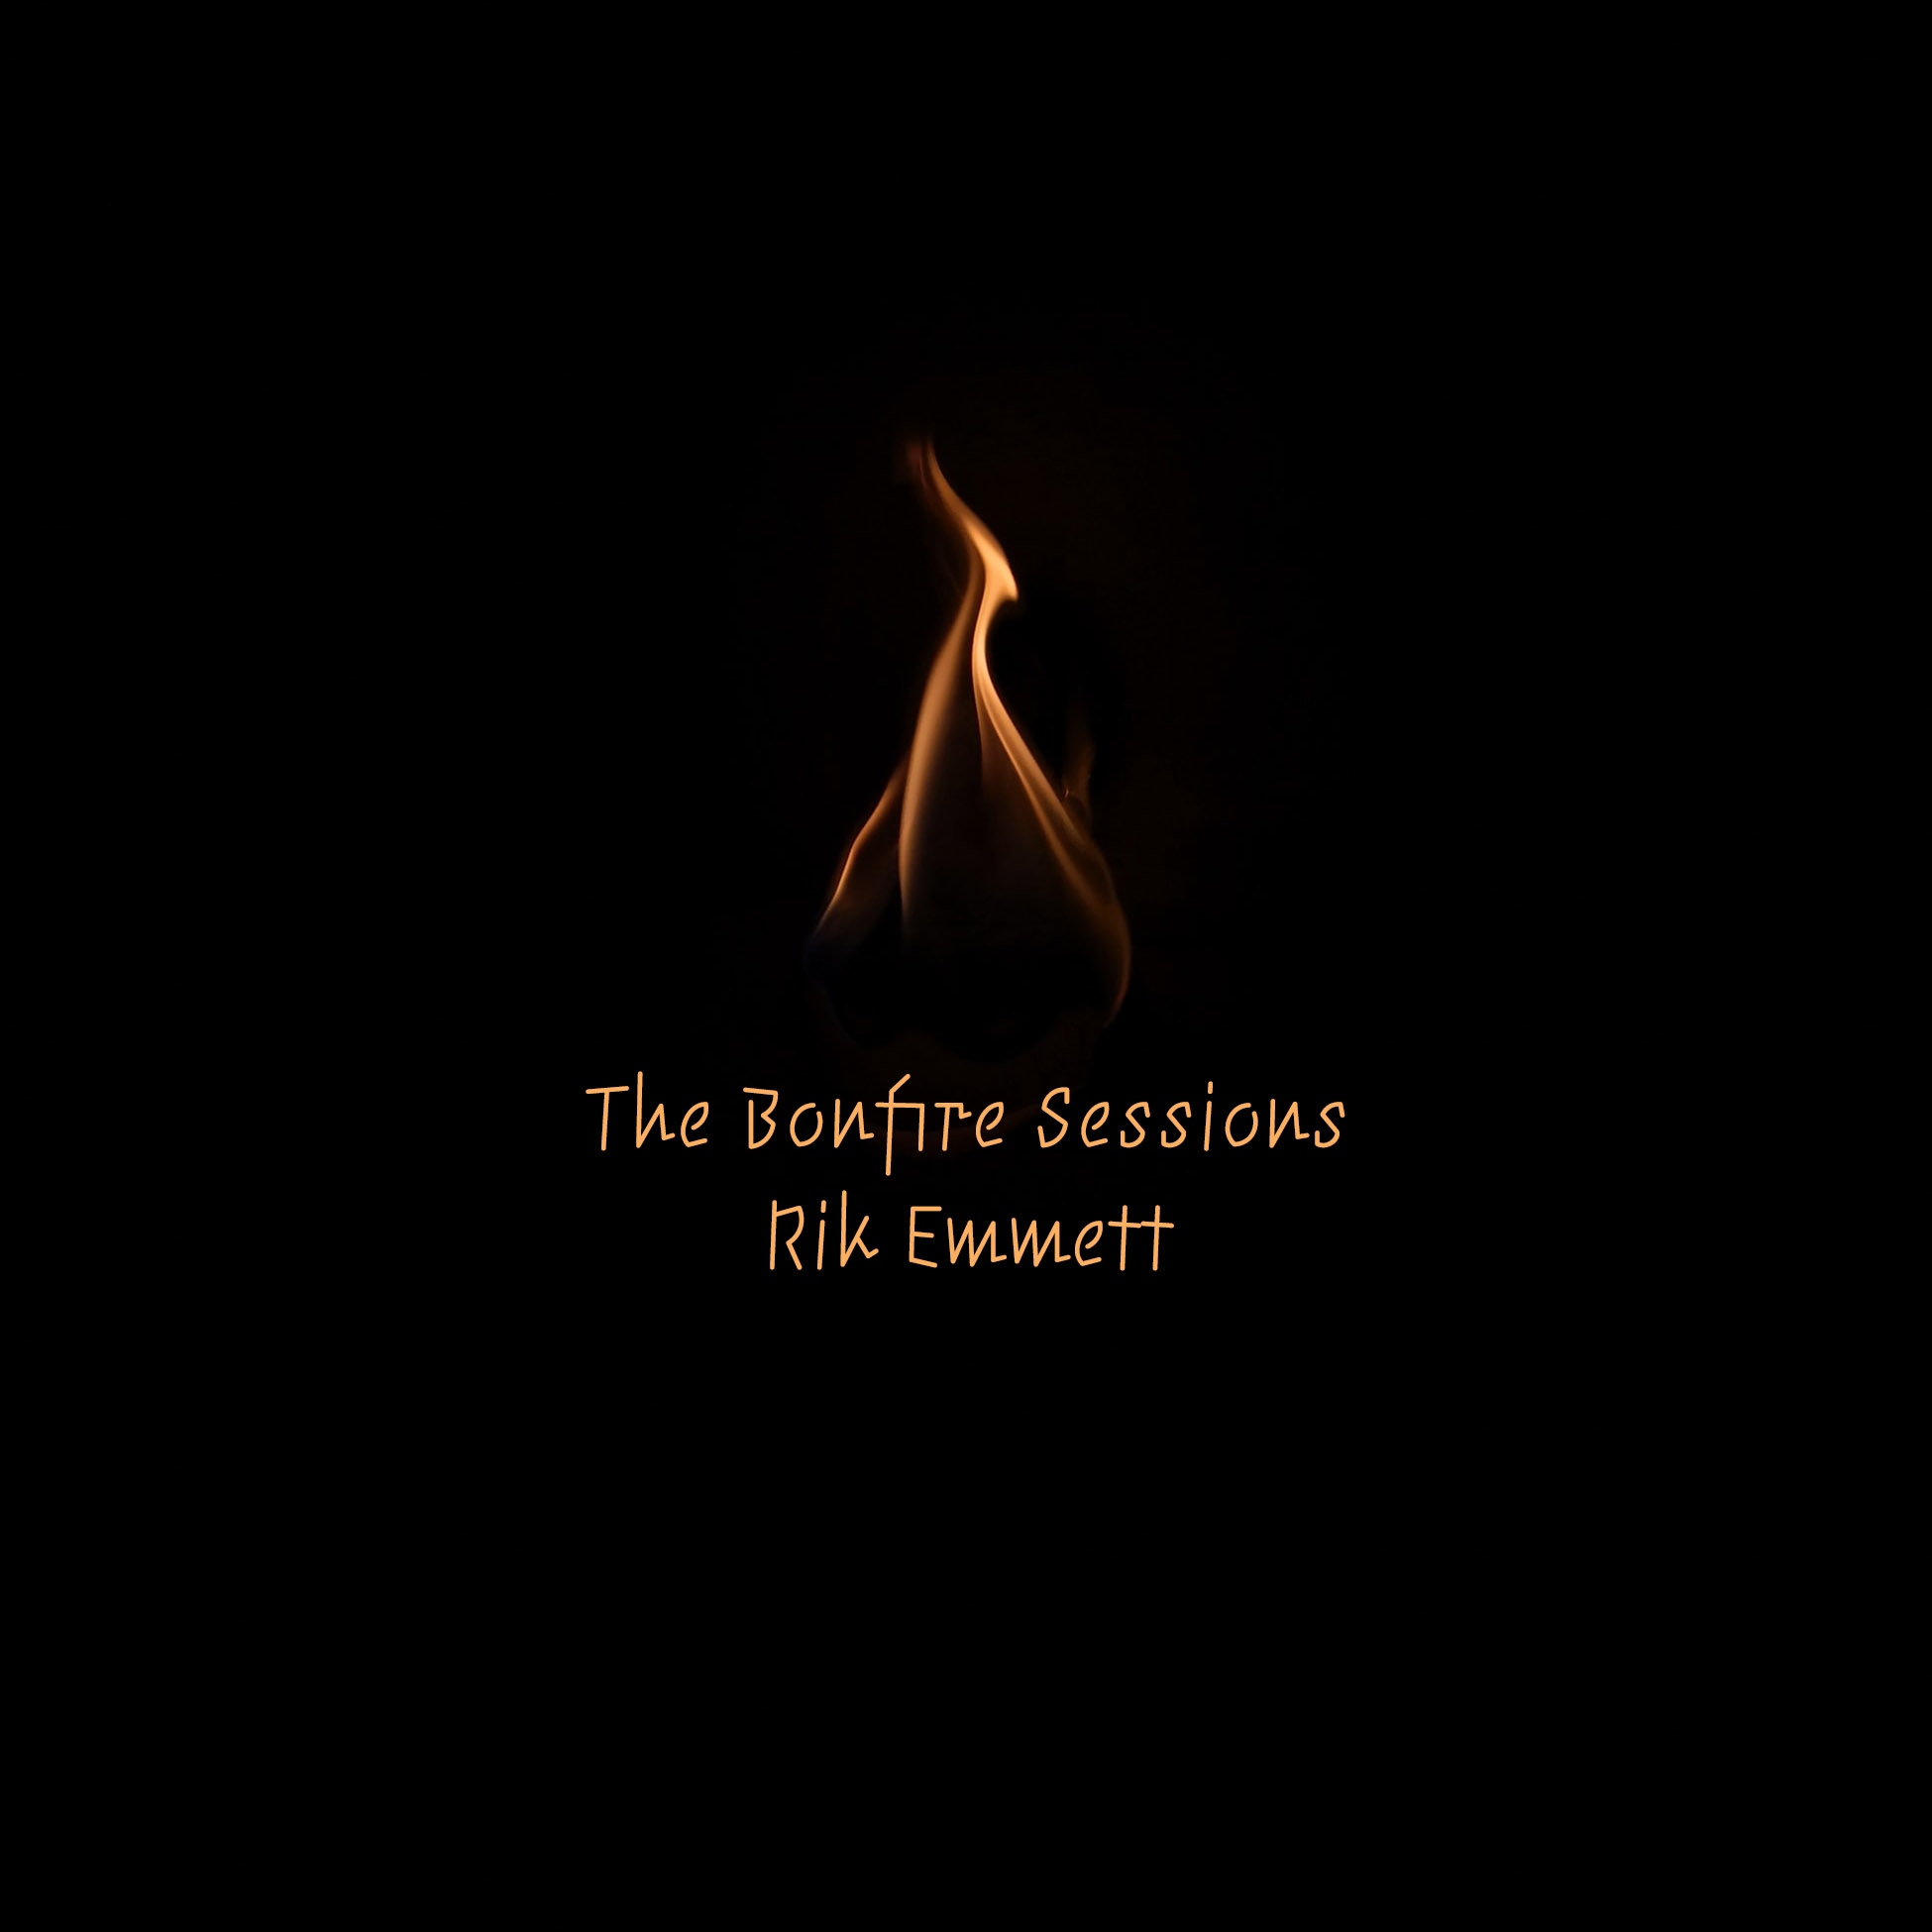 Rik Emmett - The Bonfire Sessions